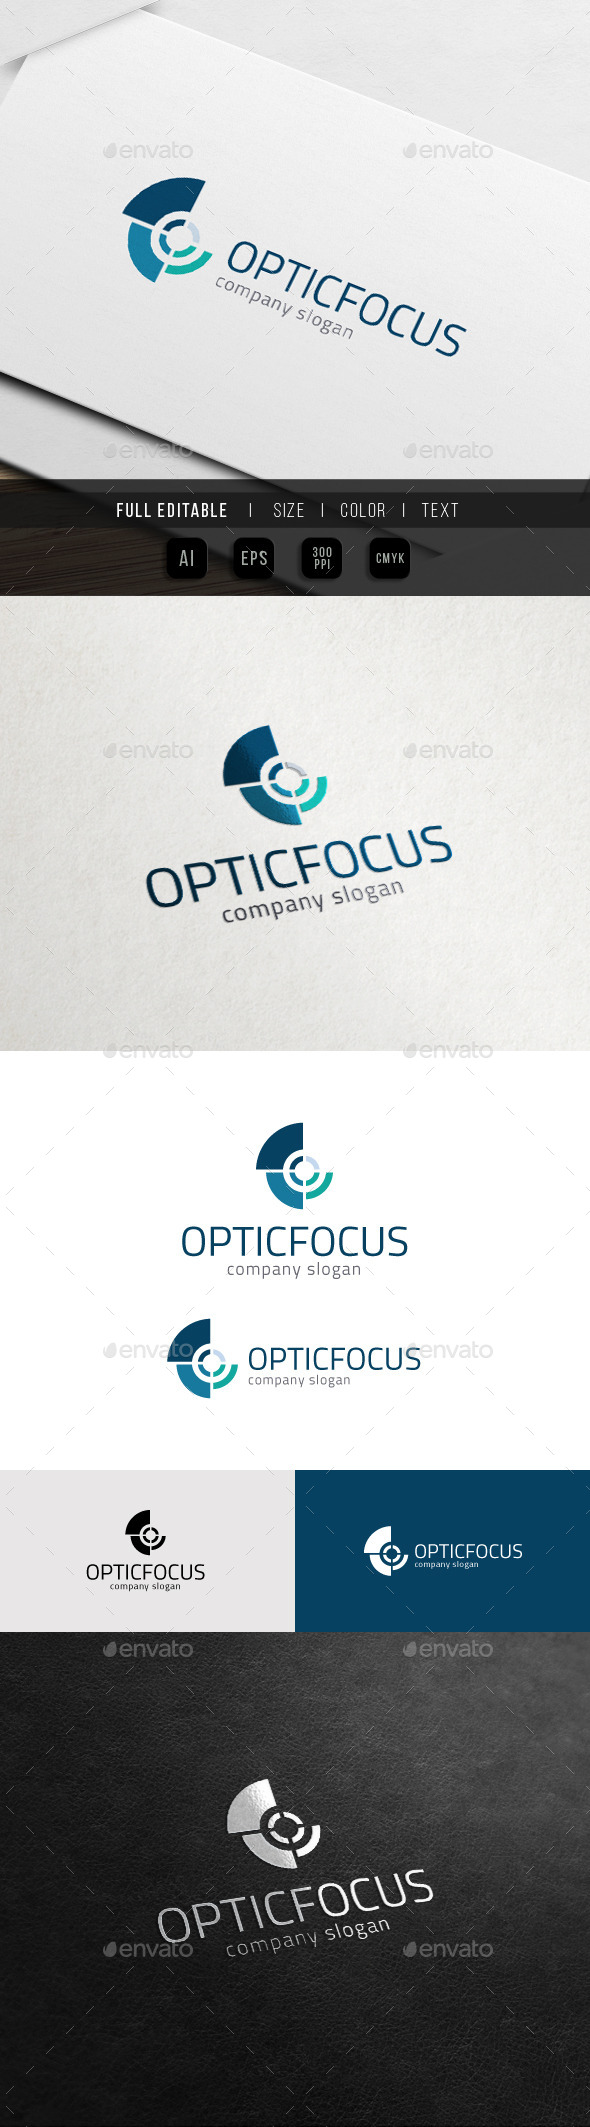 Snail Focus - Optic Camera - Letter O Logo - Letters Logo Templates